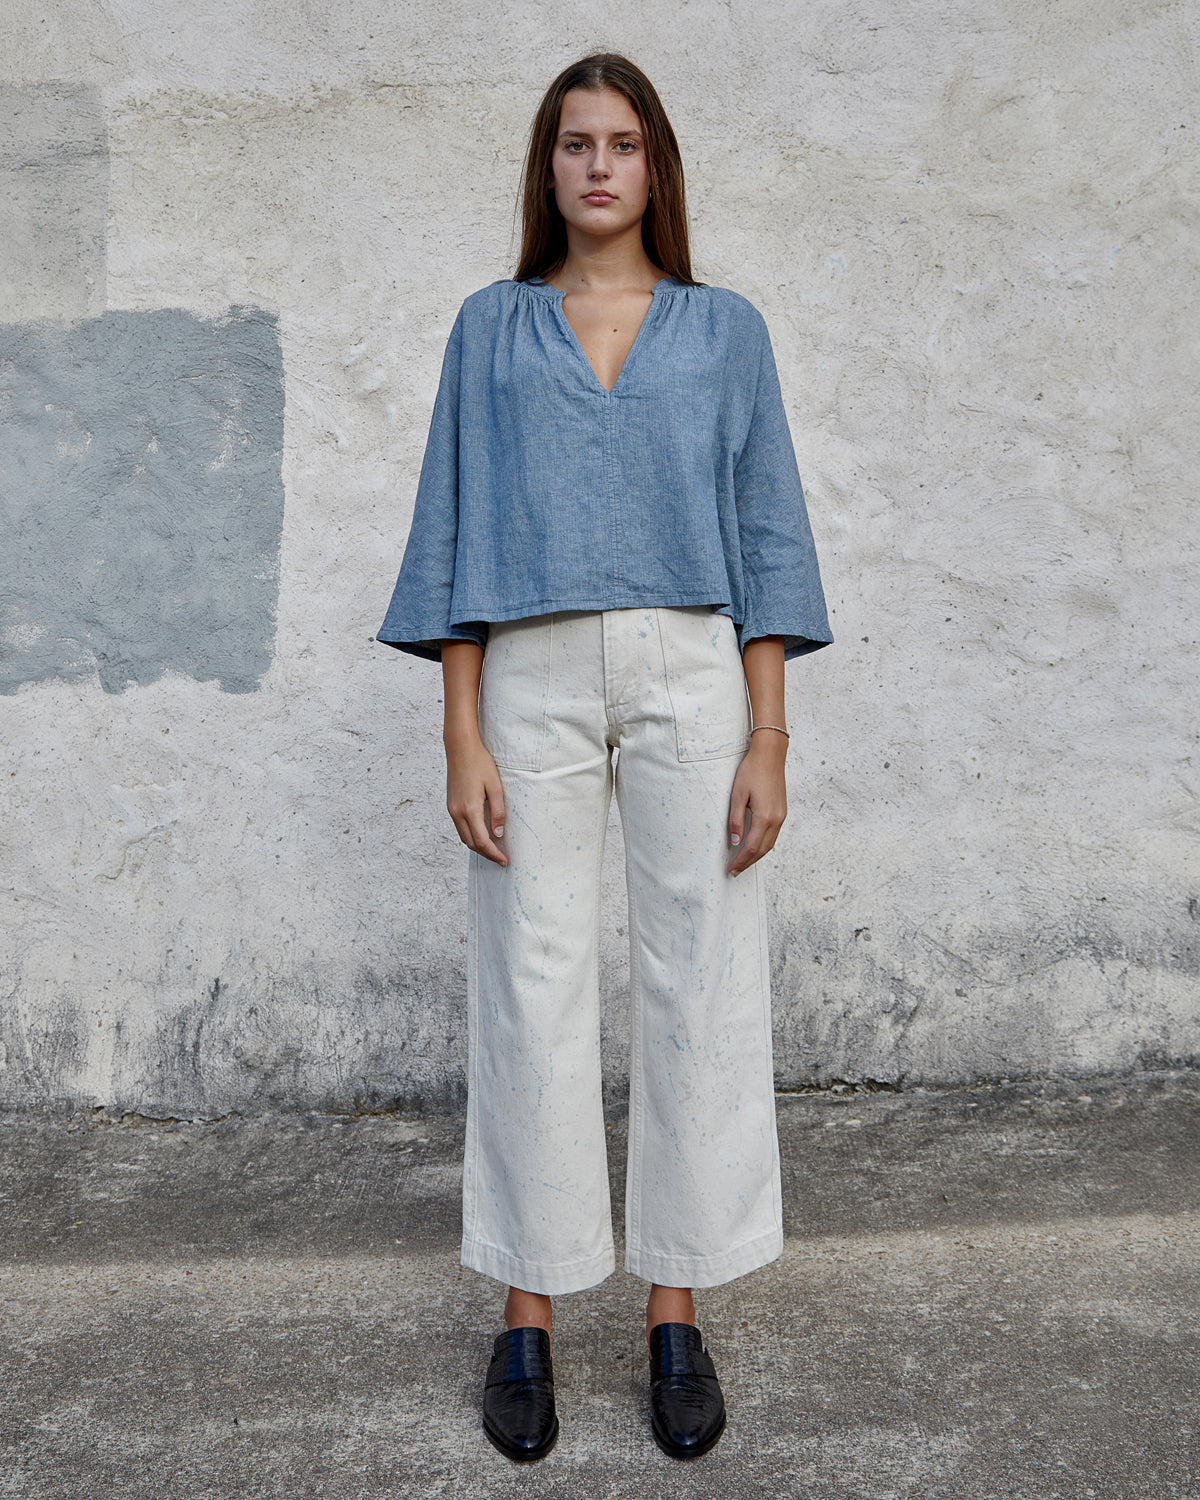 LILY TOP - CHAMBRAY HERRINGBONE